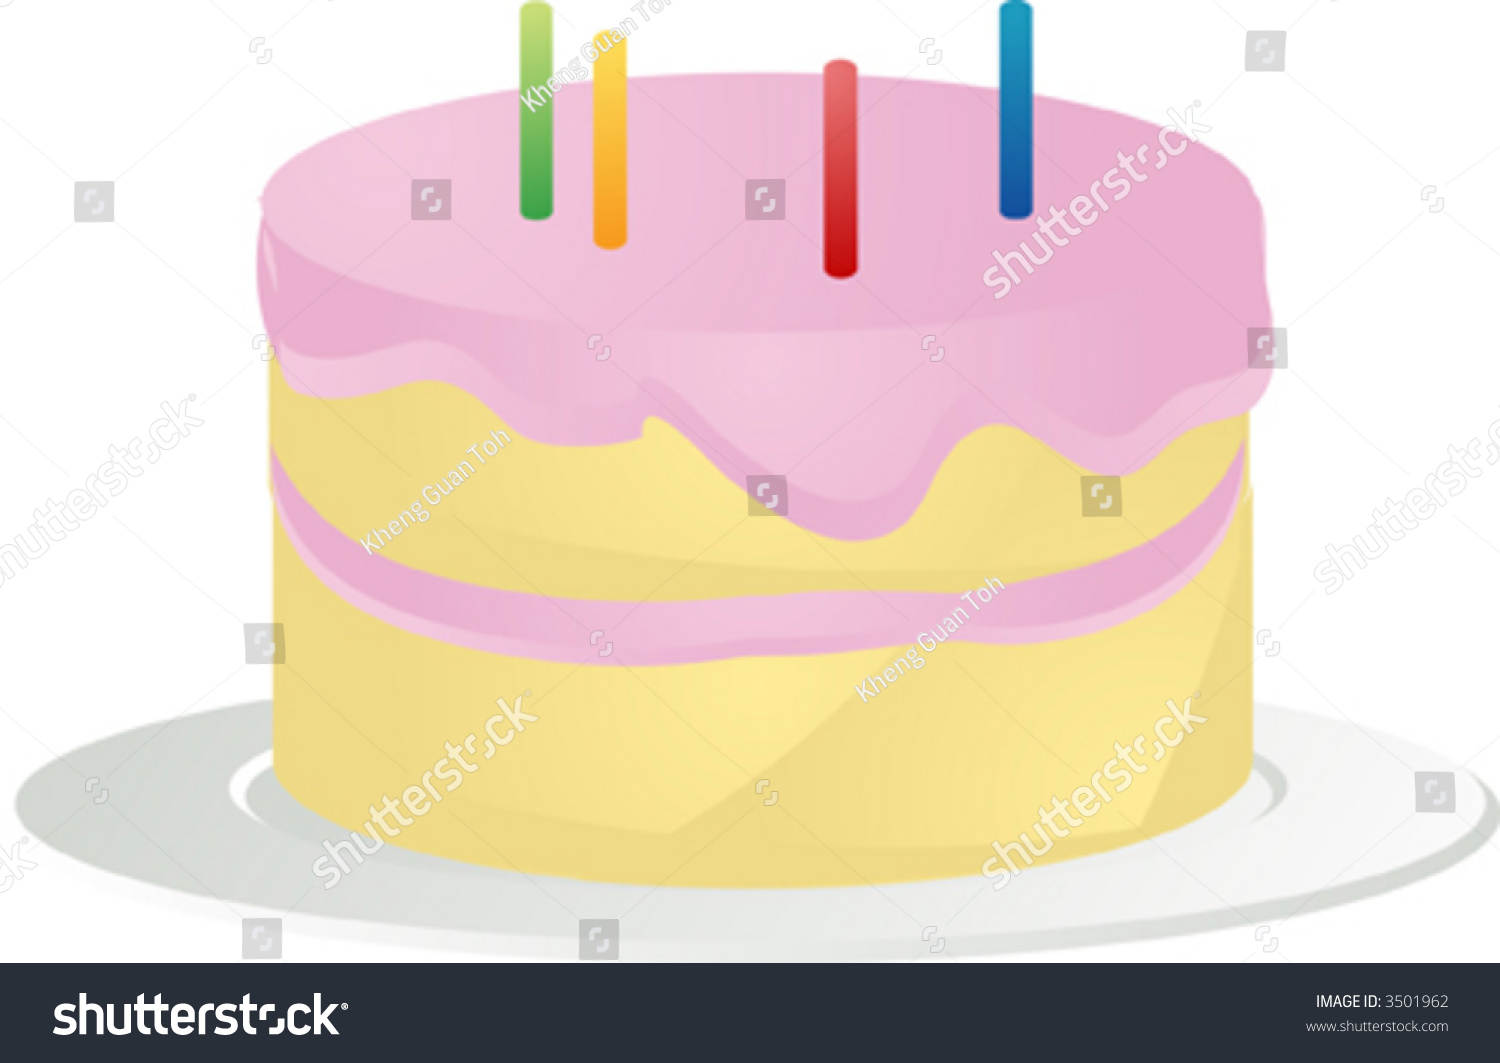 Cake With Icing Vector : Birthday Cake With Pink Icing And Candles, 3d Isometric ...